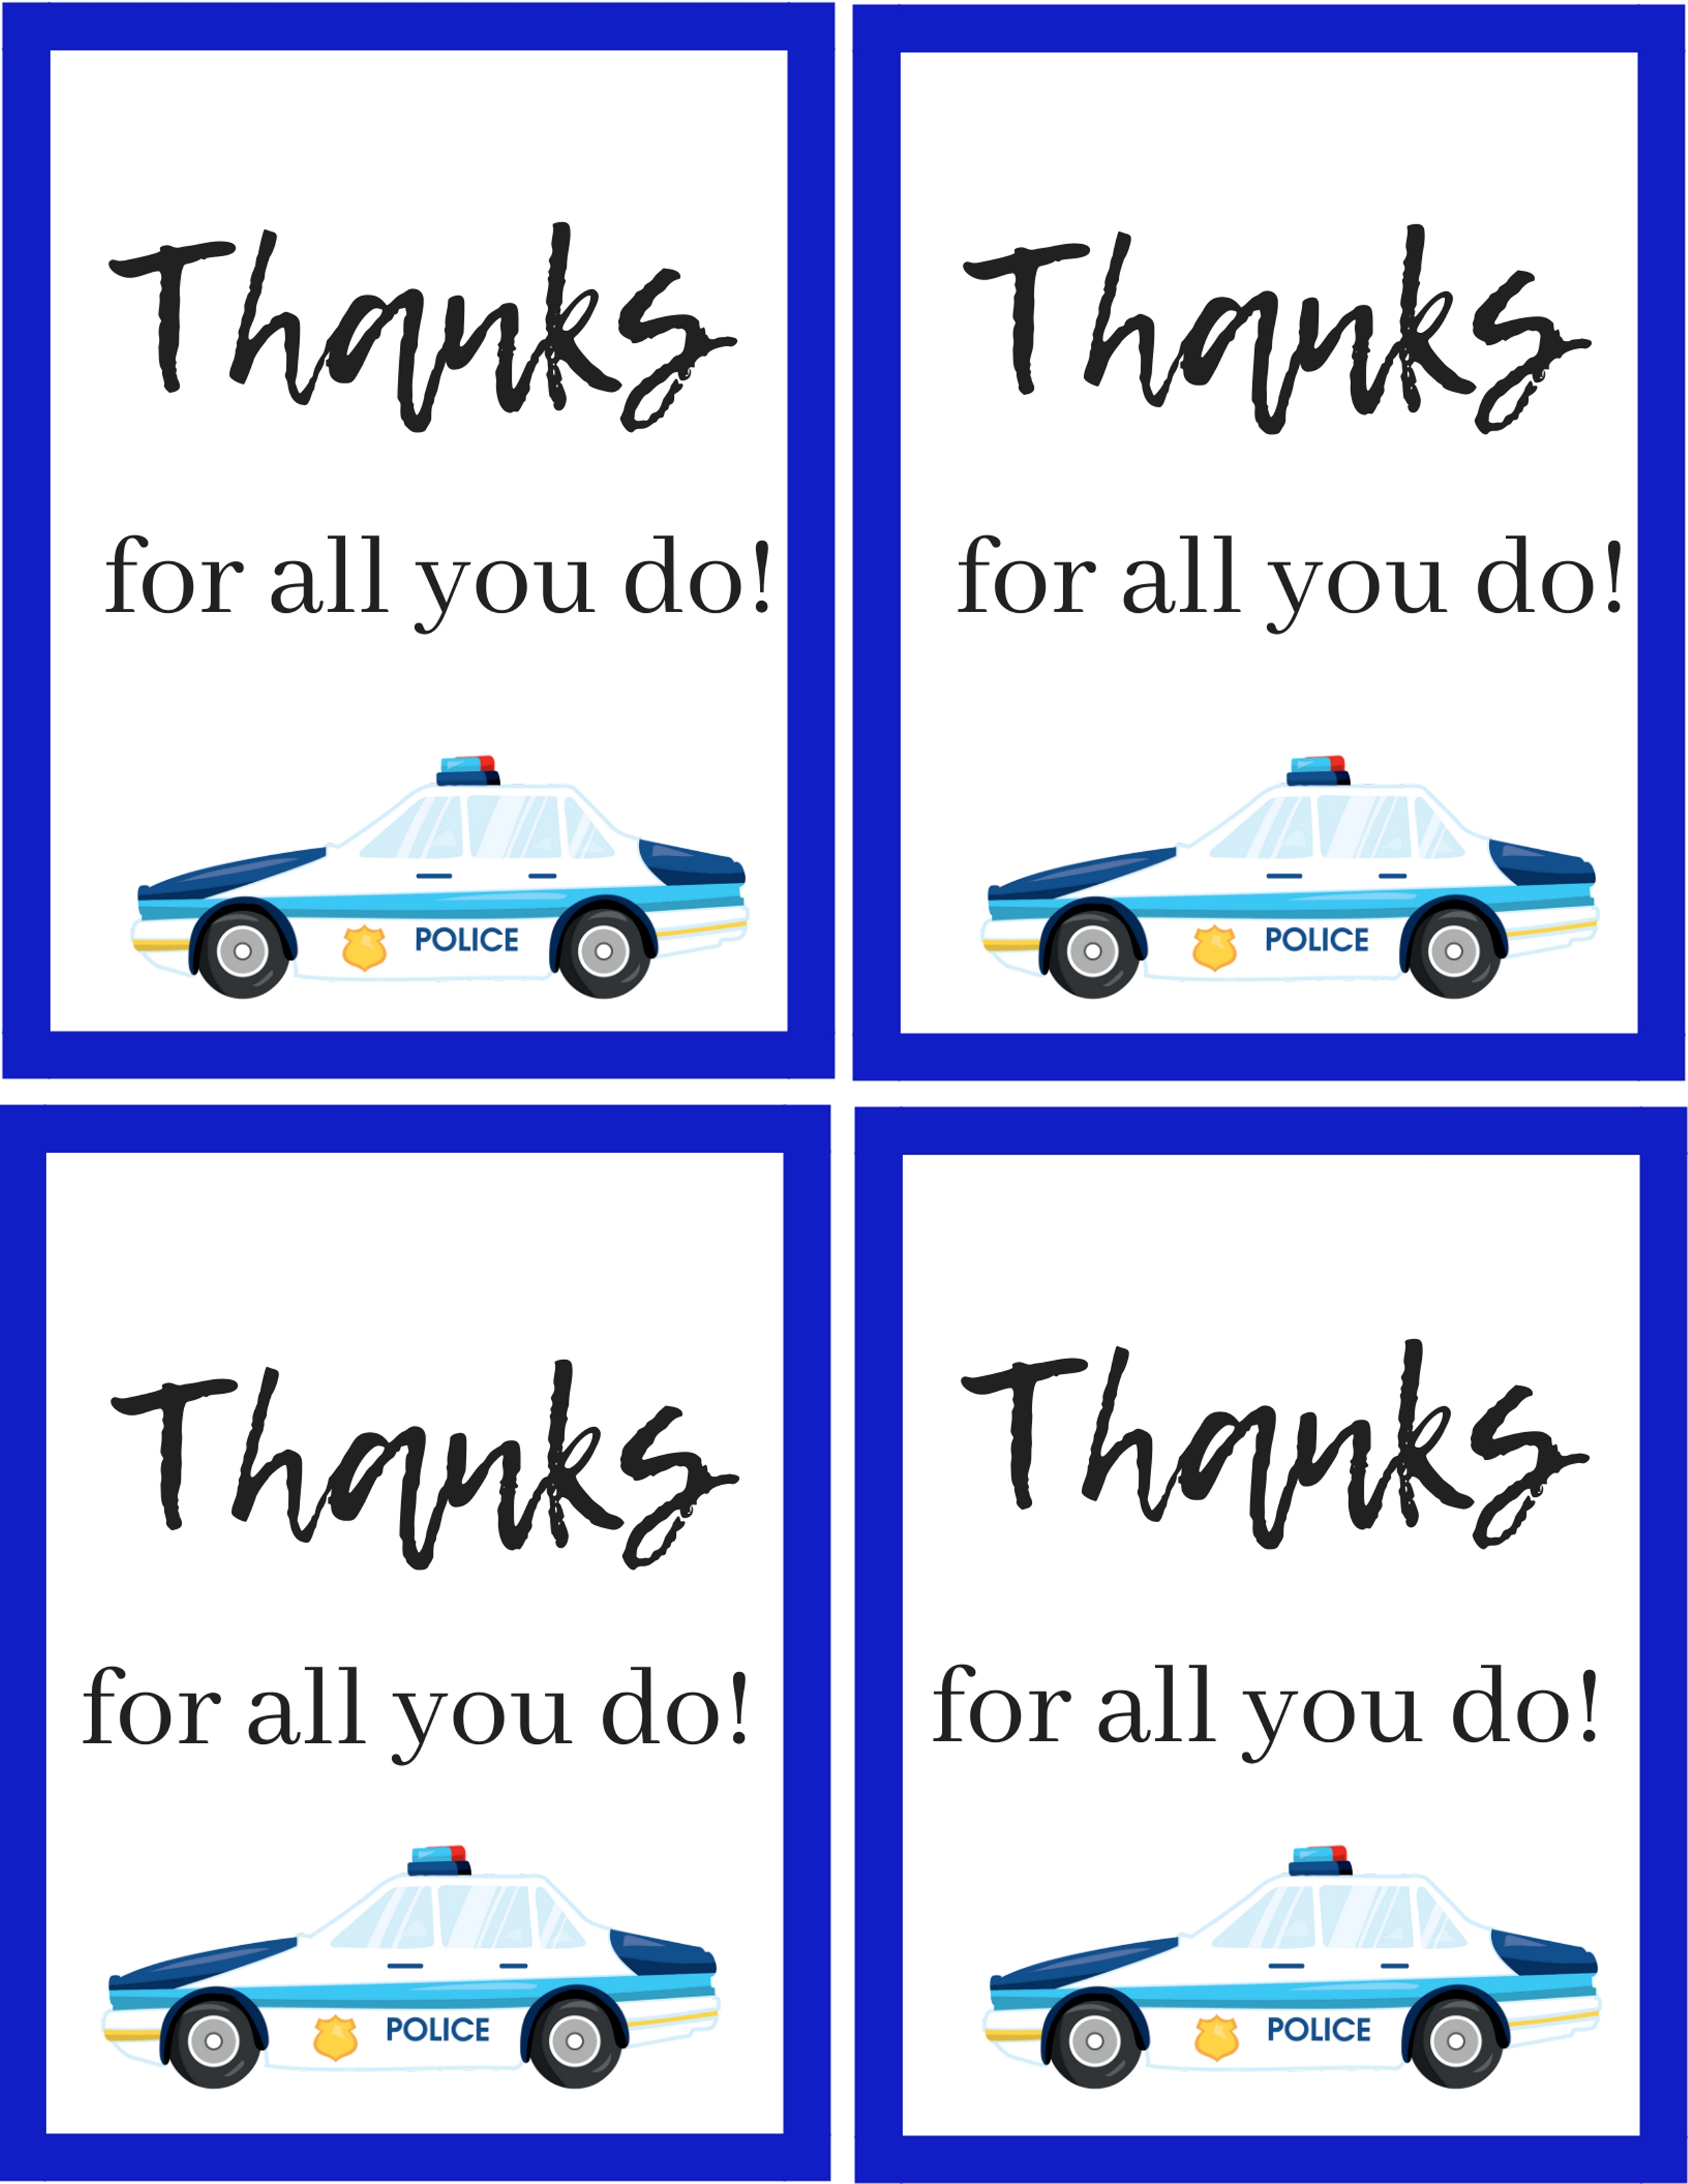 How To Thank A Police Officer With A Free Police Printable